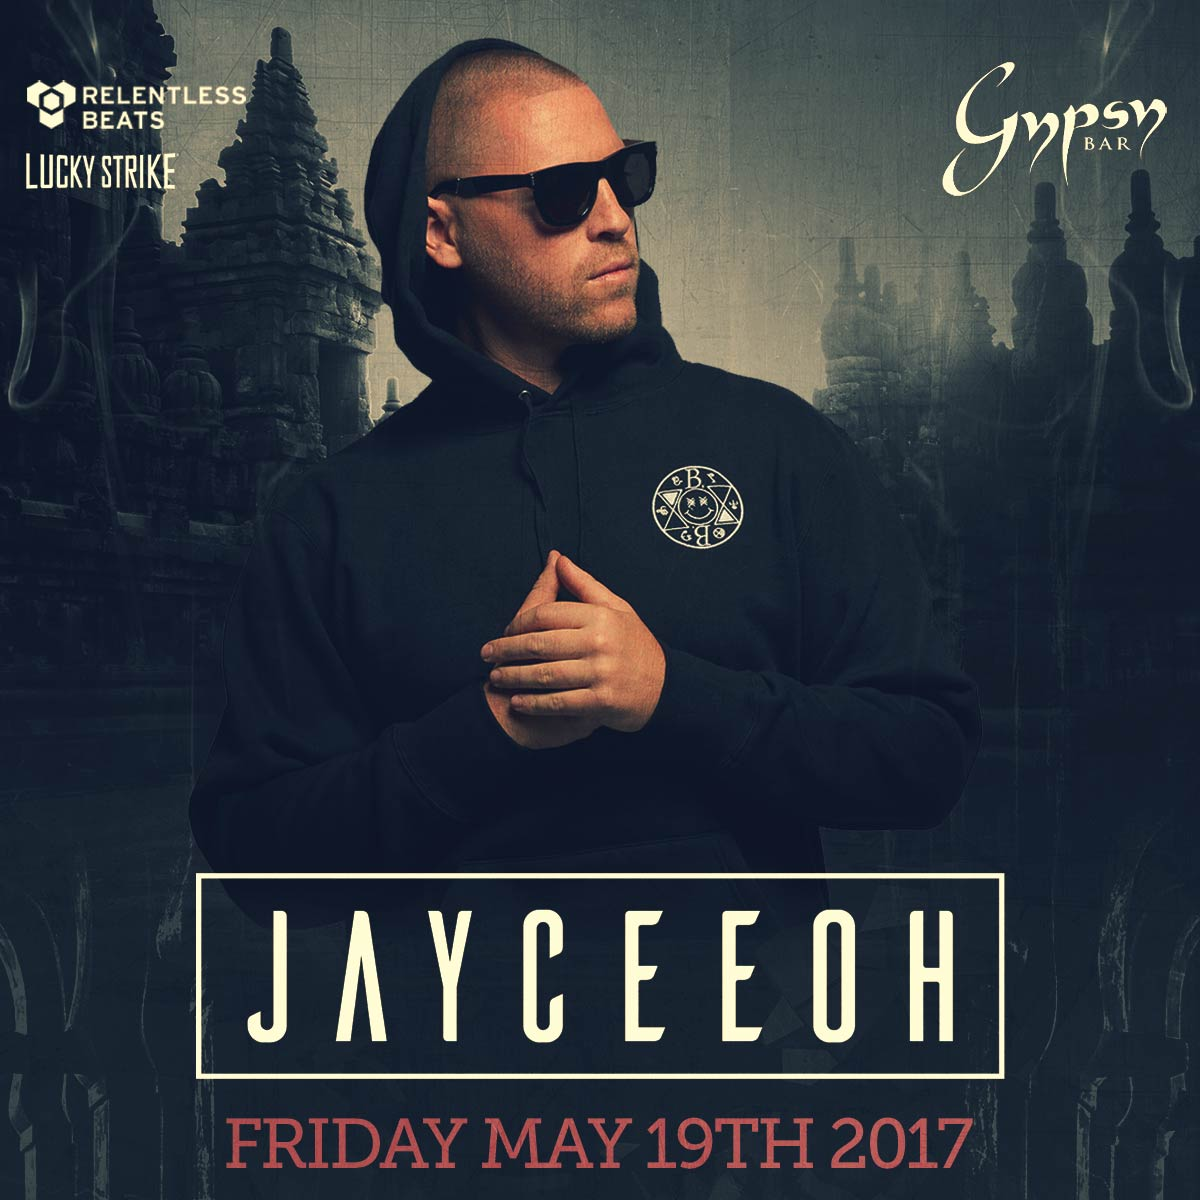 Flyer for Jayceeoh